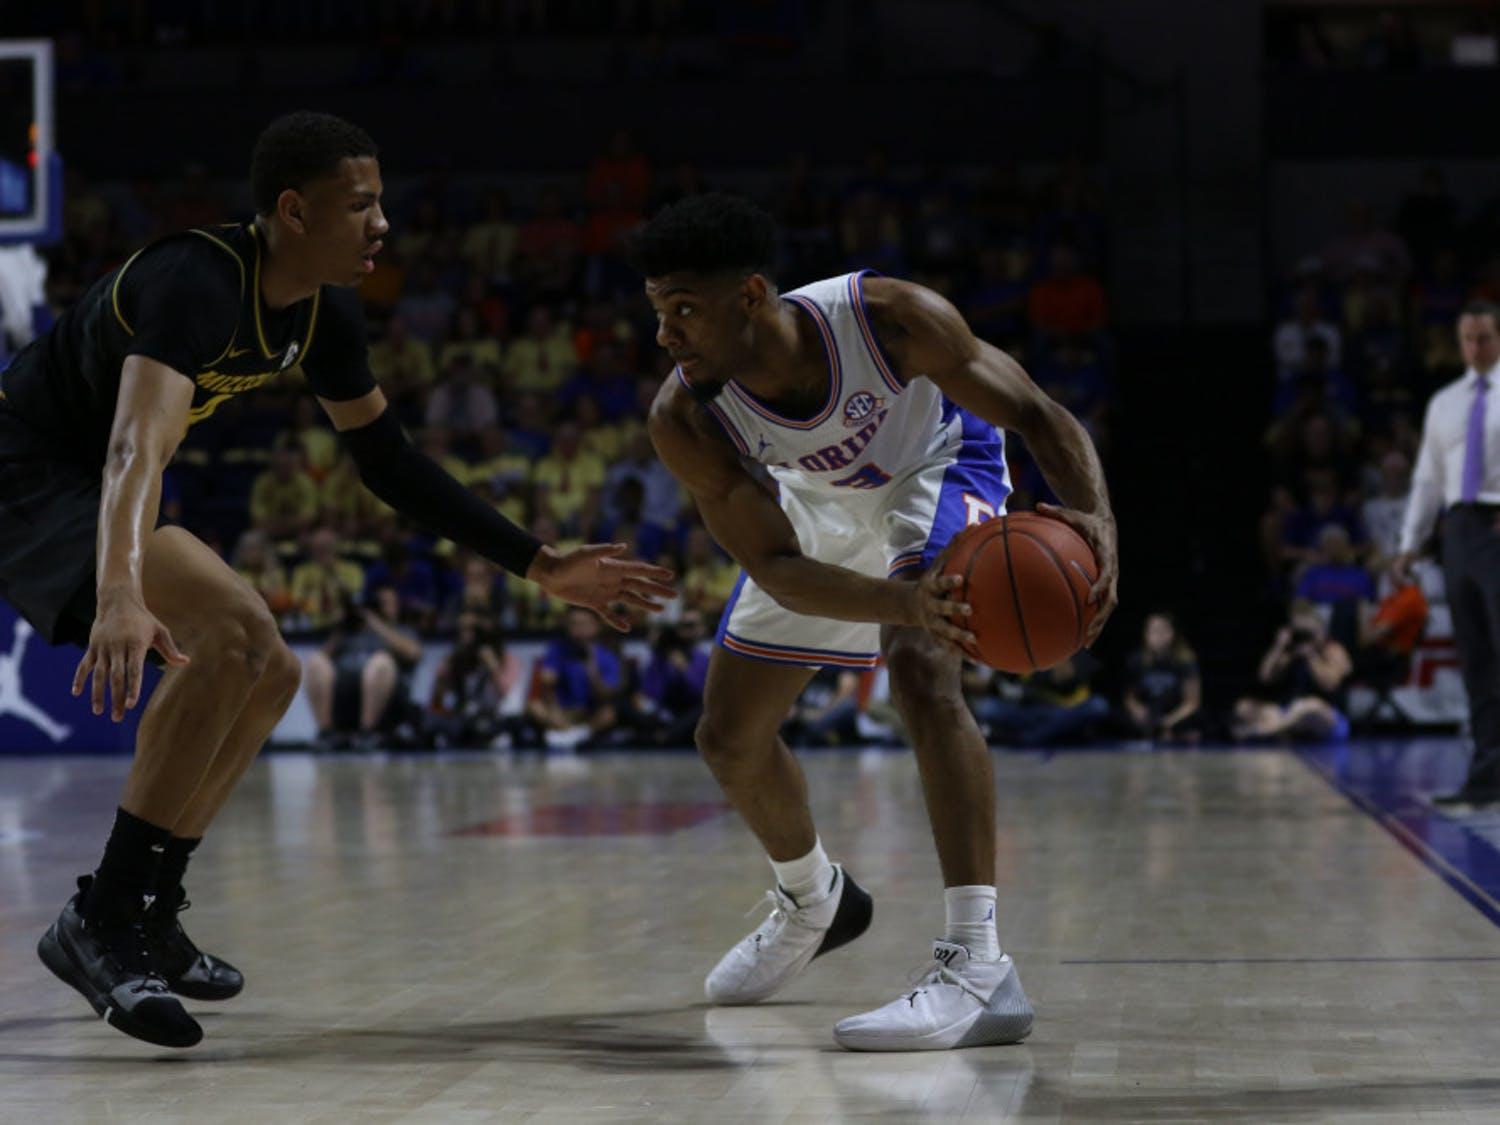 Florida guard Jalen Hudson scored a team-high 13 points in UF's 61-55 loss to Georgia on Saturday at the O'Connell Center.